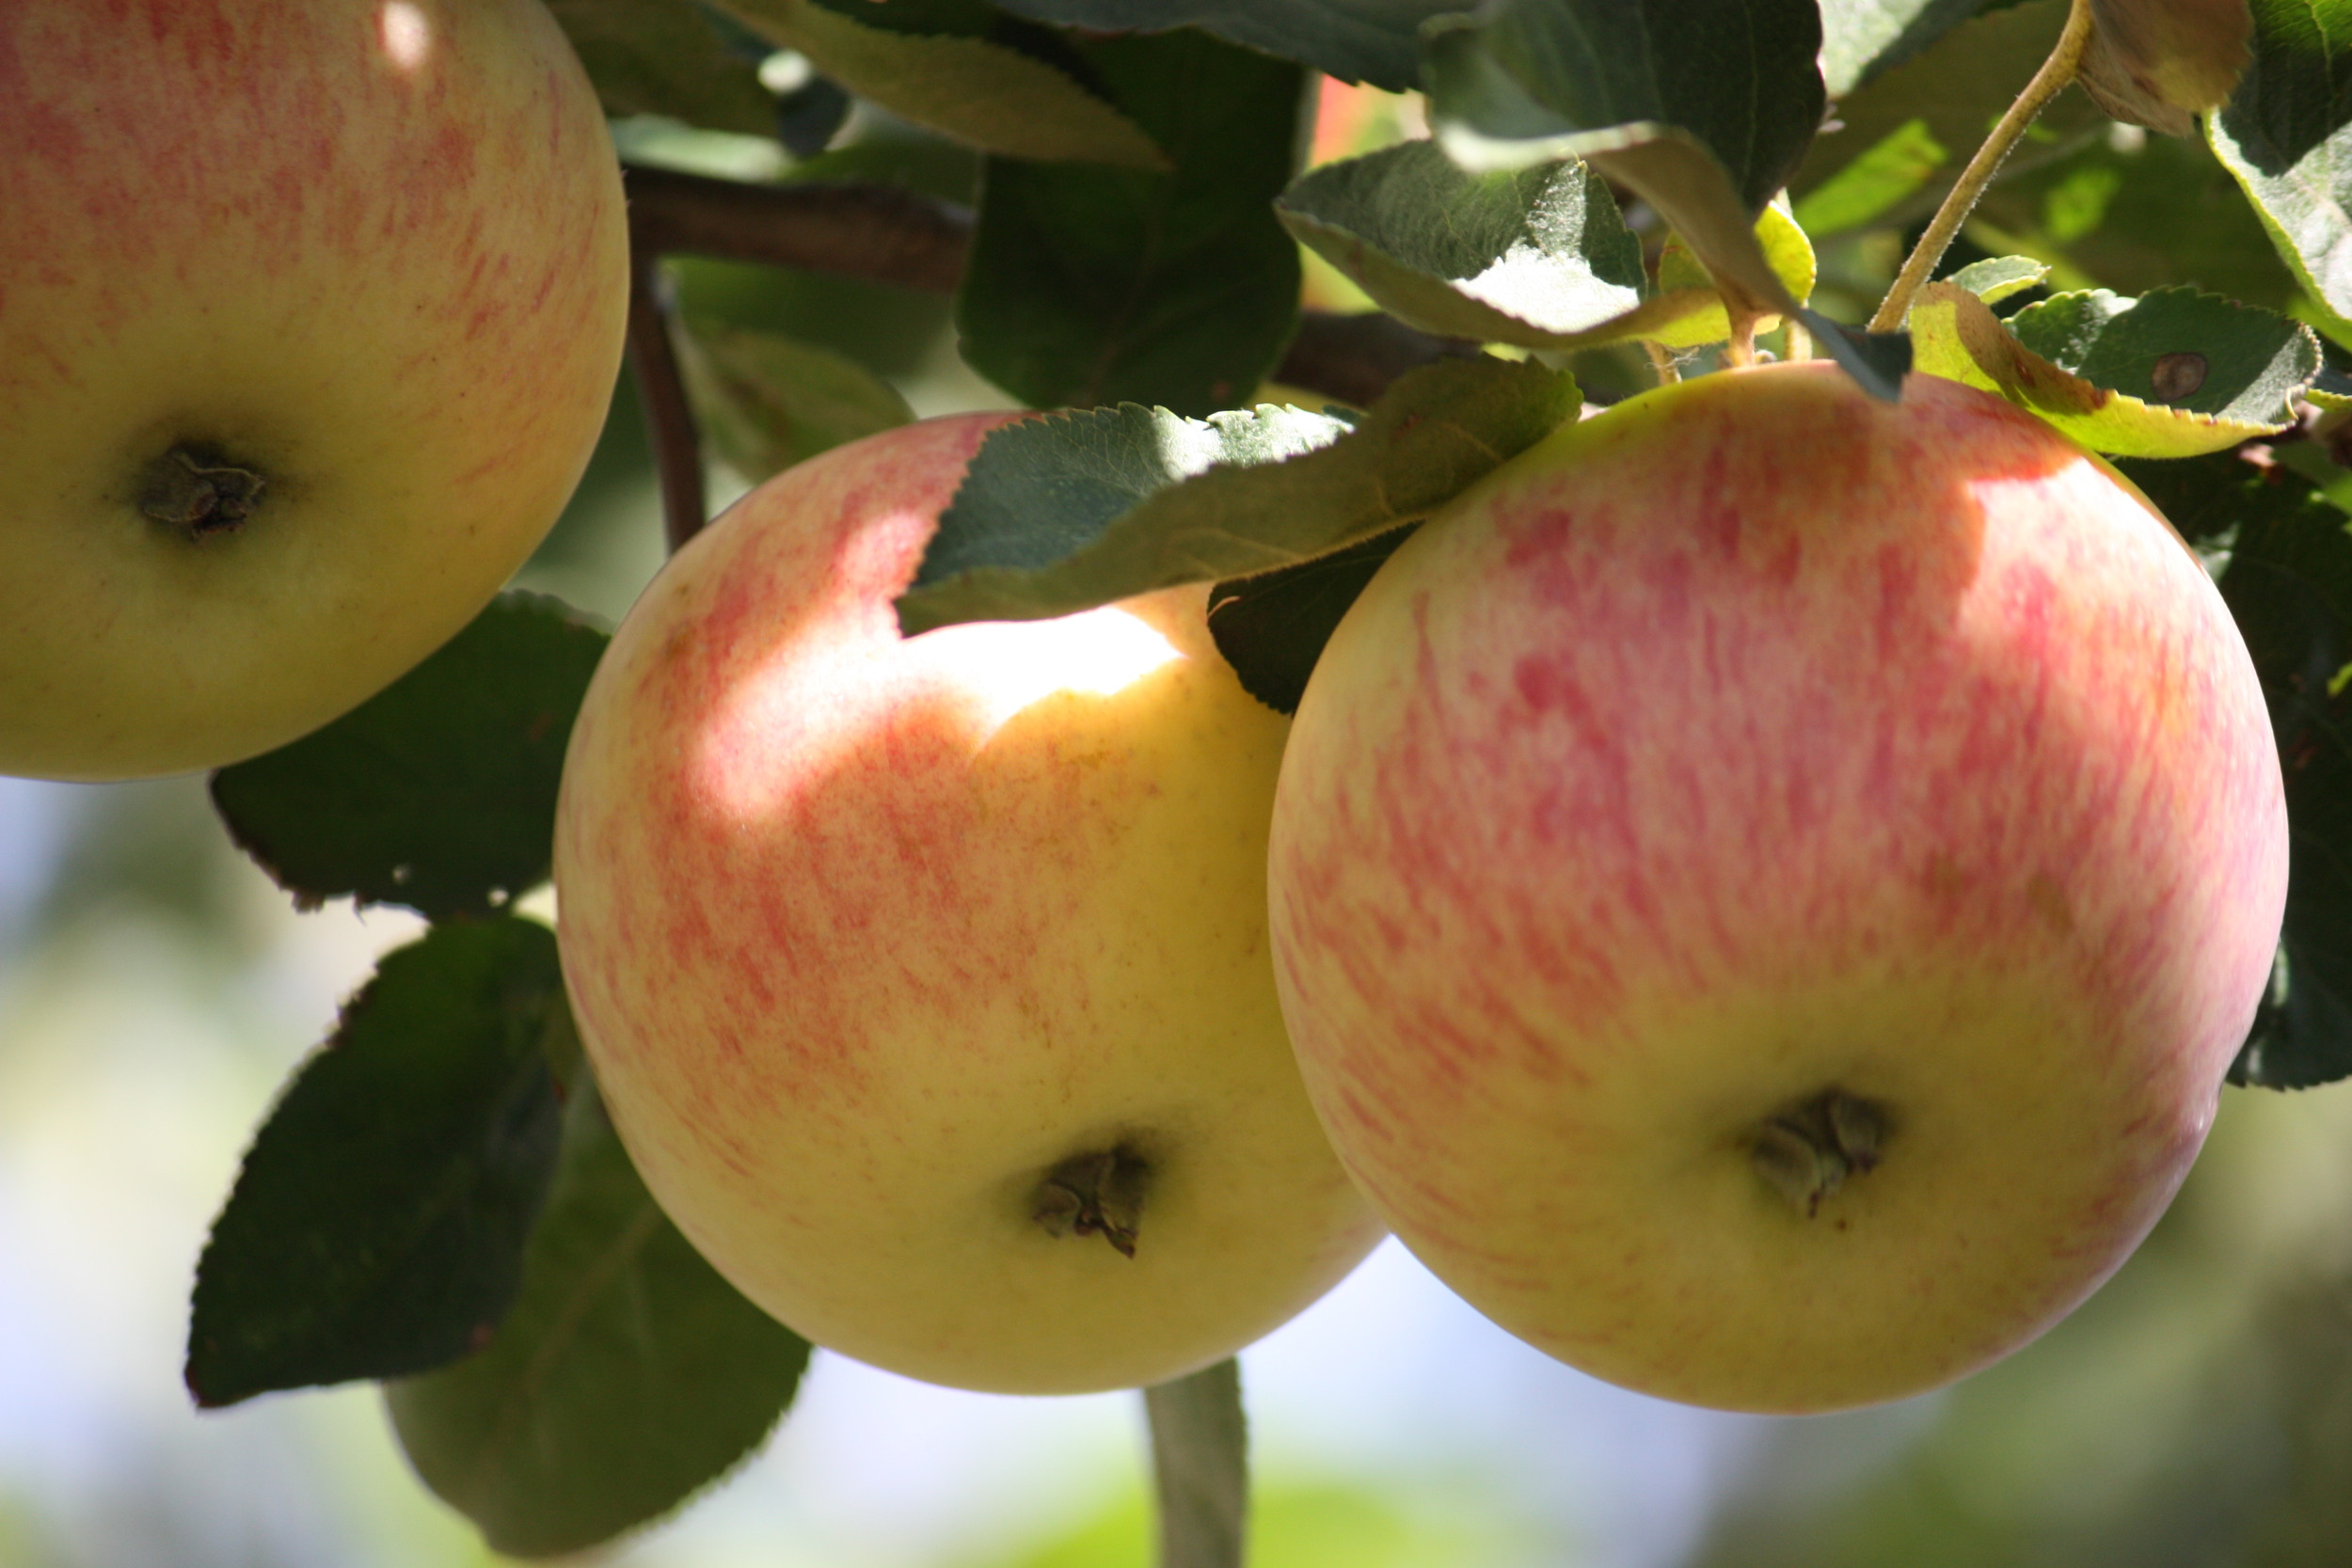 Orchard Apples - Birch Hill Farm on the edge of the Qu'Appelle Valley